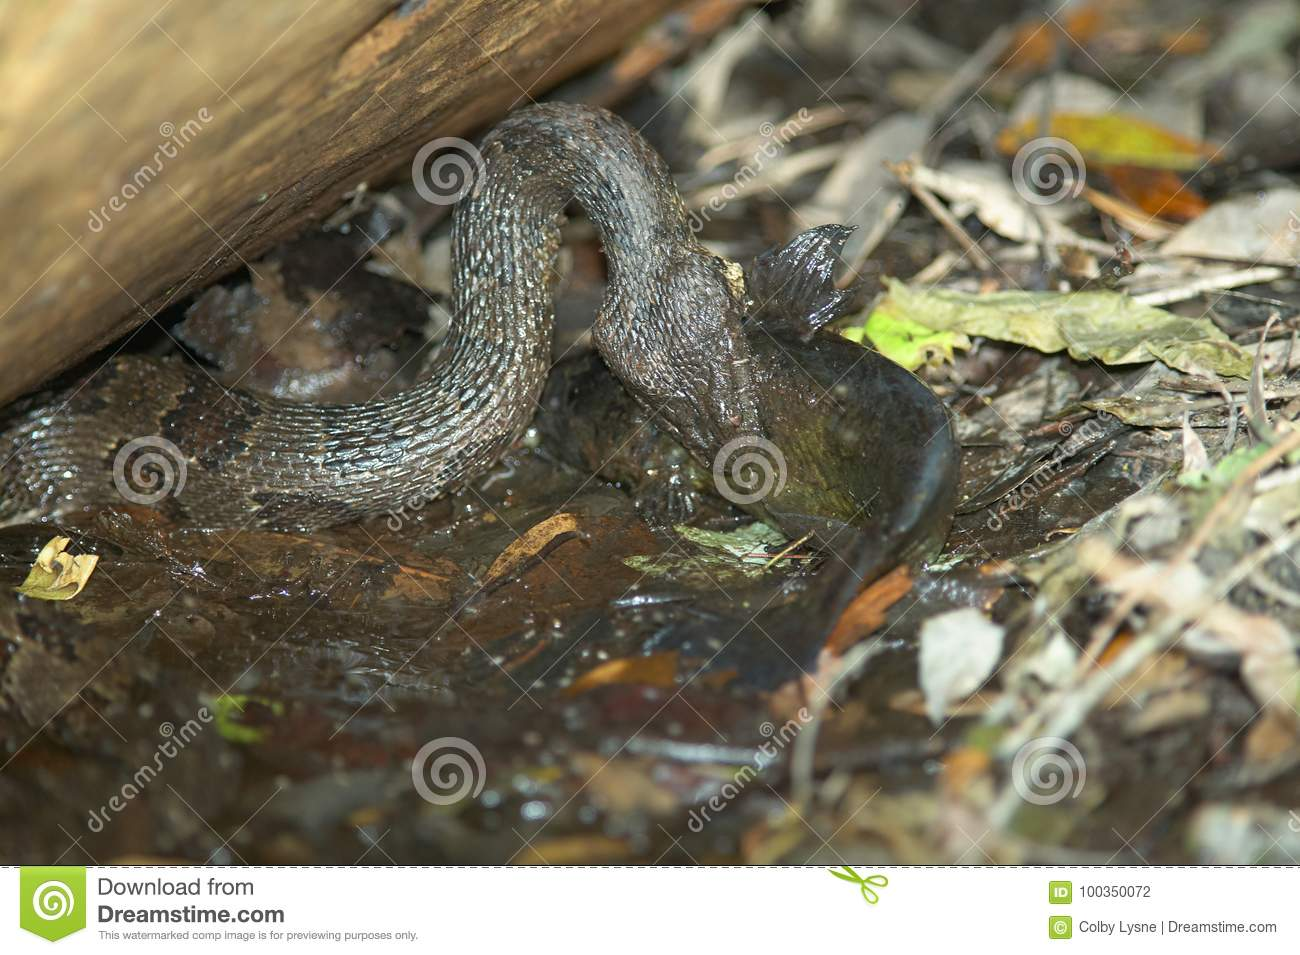 Water Moccasin Snake Catching Fish At Swamp Stock Photo Image Of